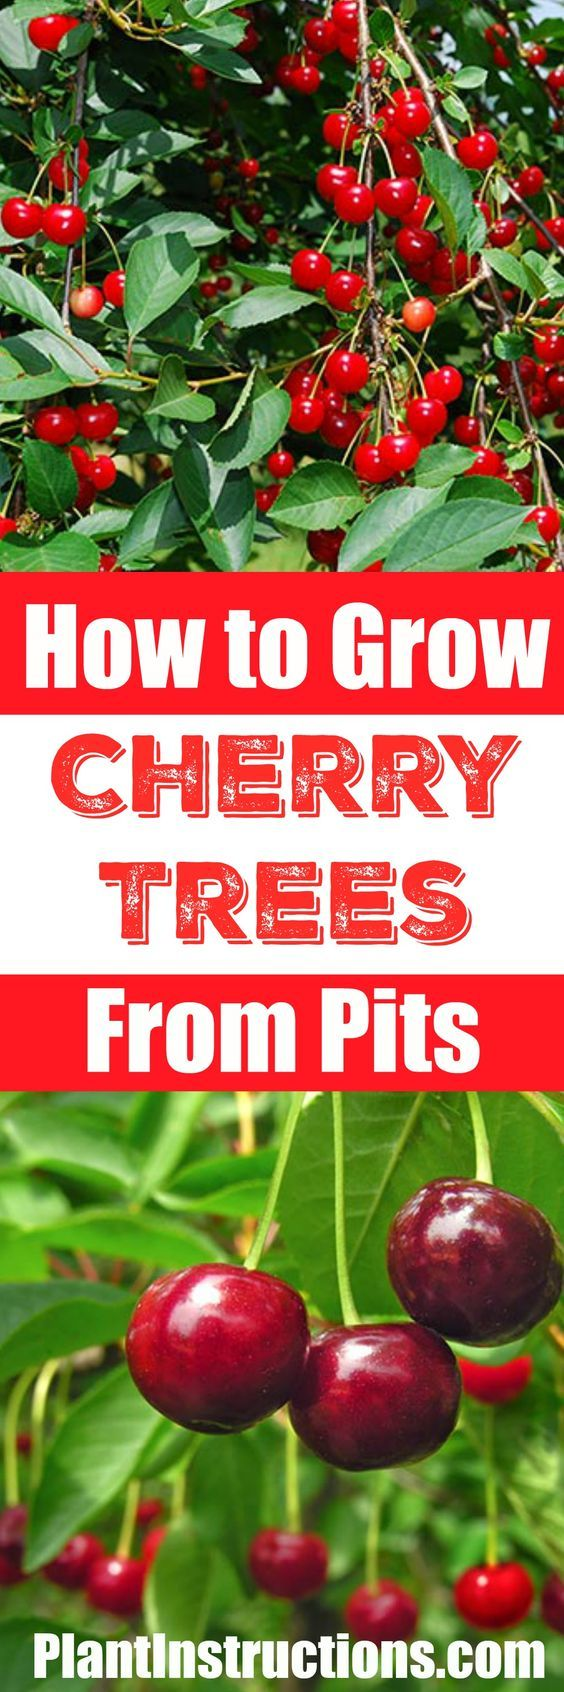 How To Grow A Cherry Tree From Seeds Growing Cherry Trees Cherry Tree From Seed Growing Fruit Trees